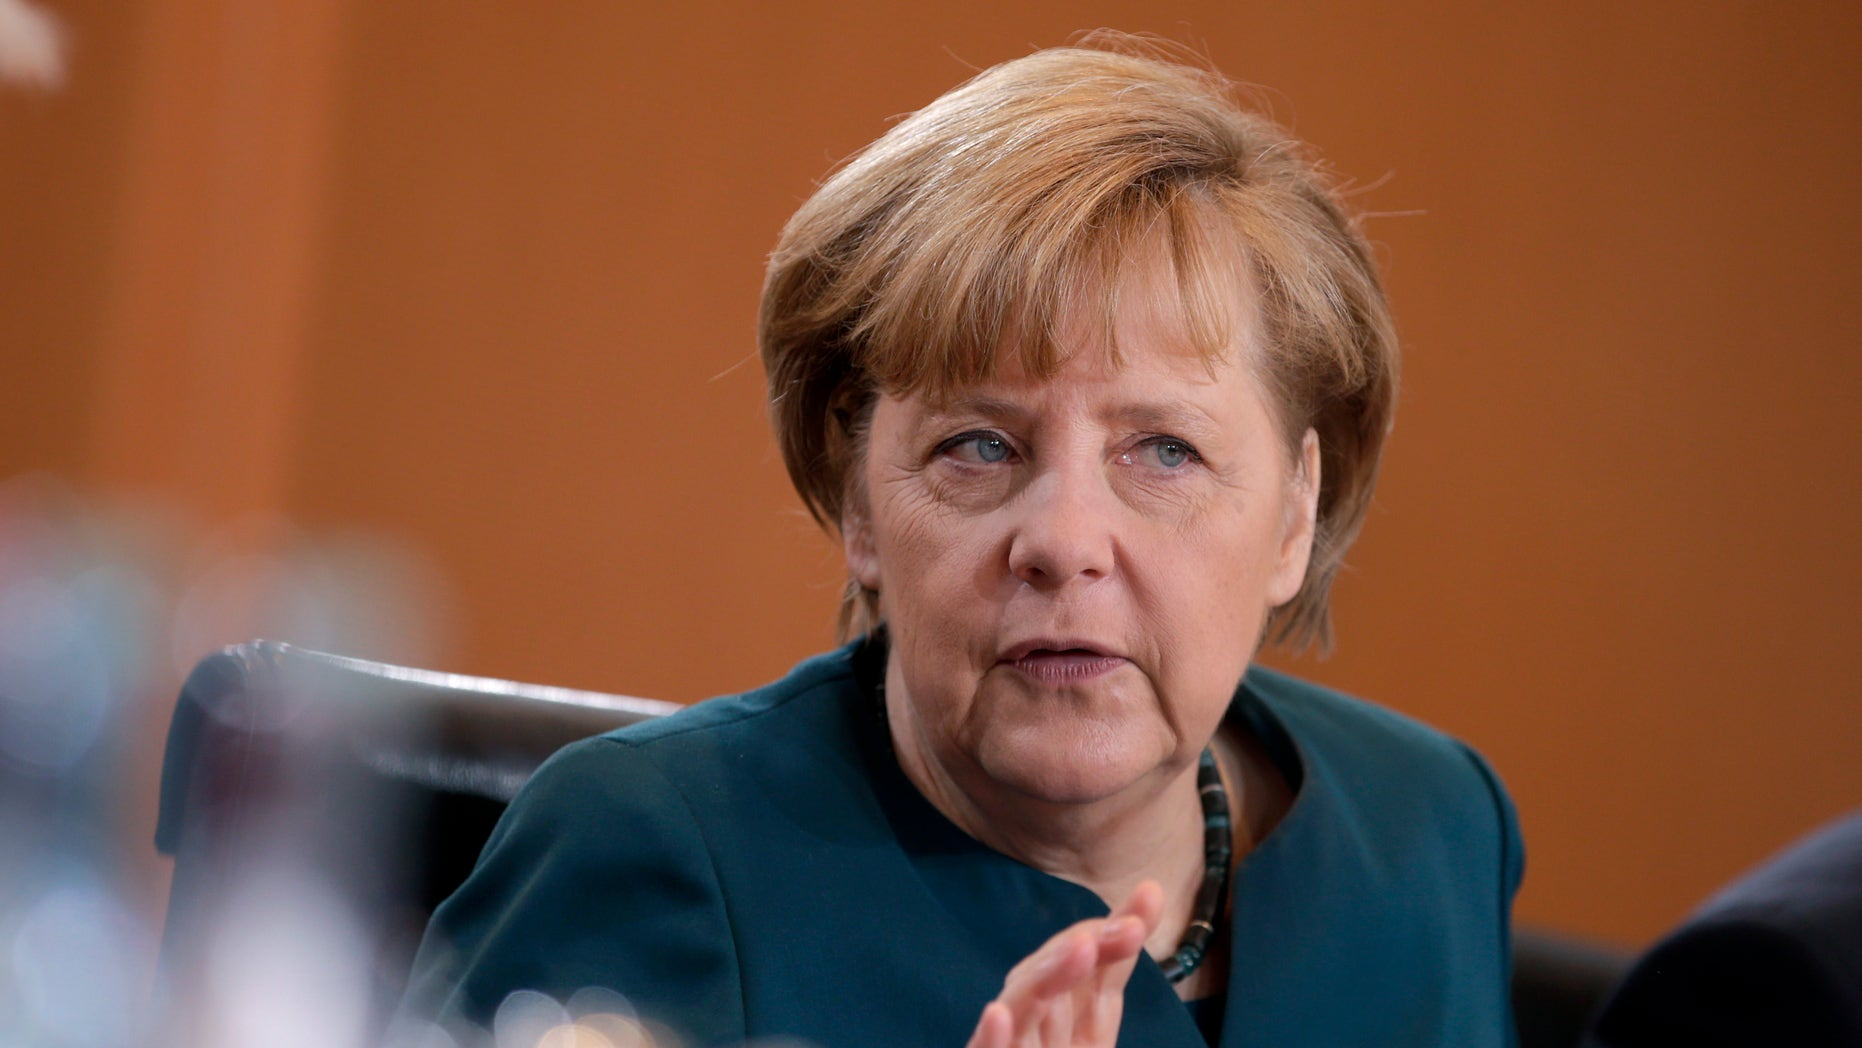 German Chancellor Angela Merkel gestures at the beginning of the weekly cabinet meeting at the chancellery in Berlin, Germany, Wednesday, Jan. 15, 2014. (AP Photo/Michael Sohn)